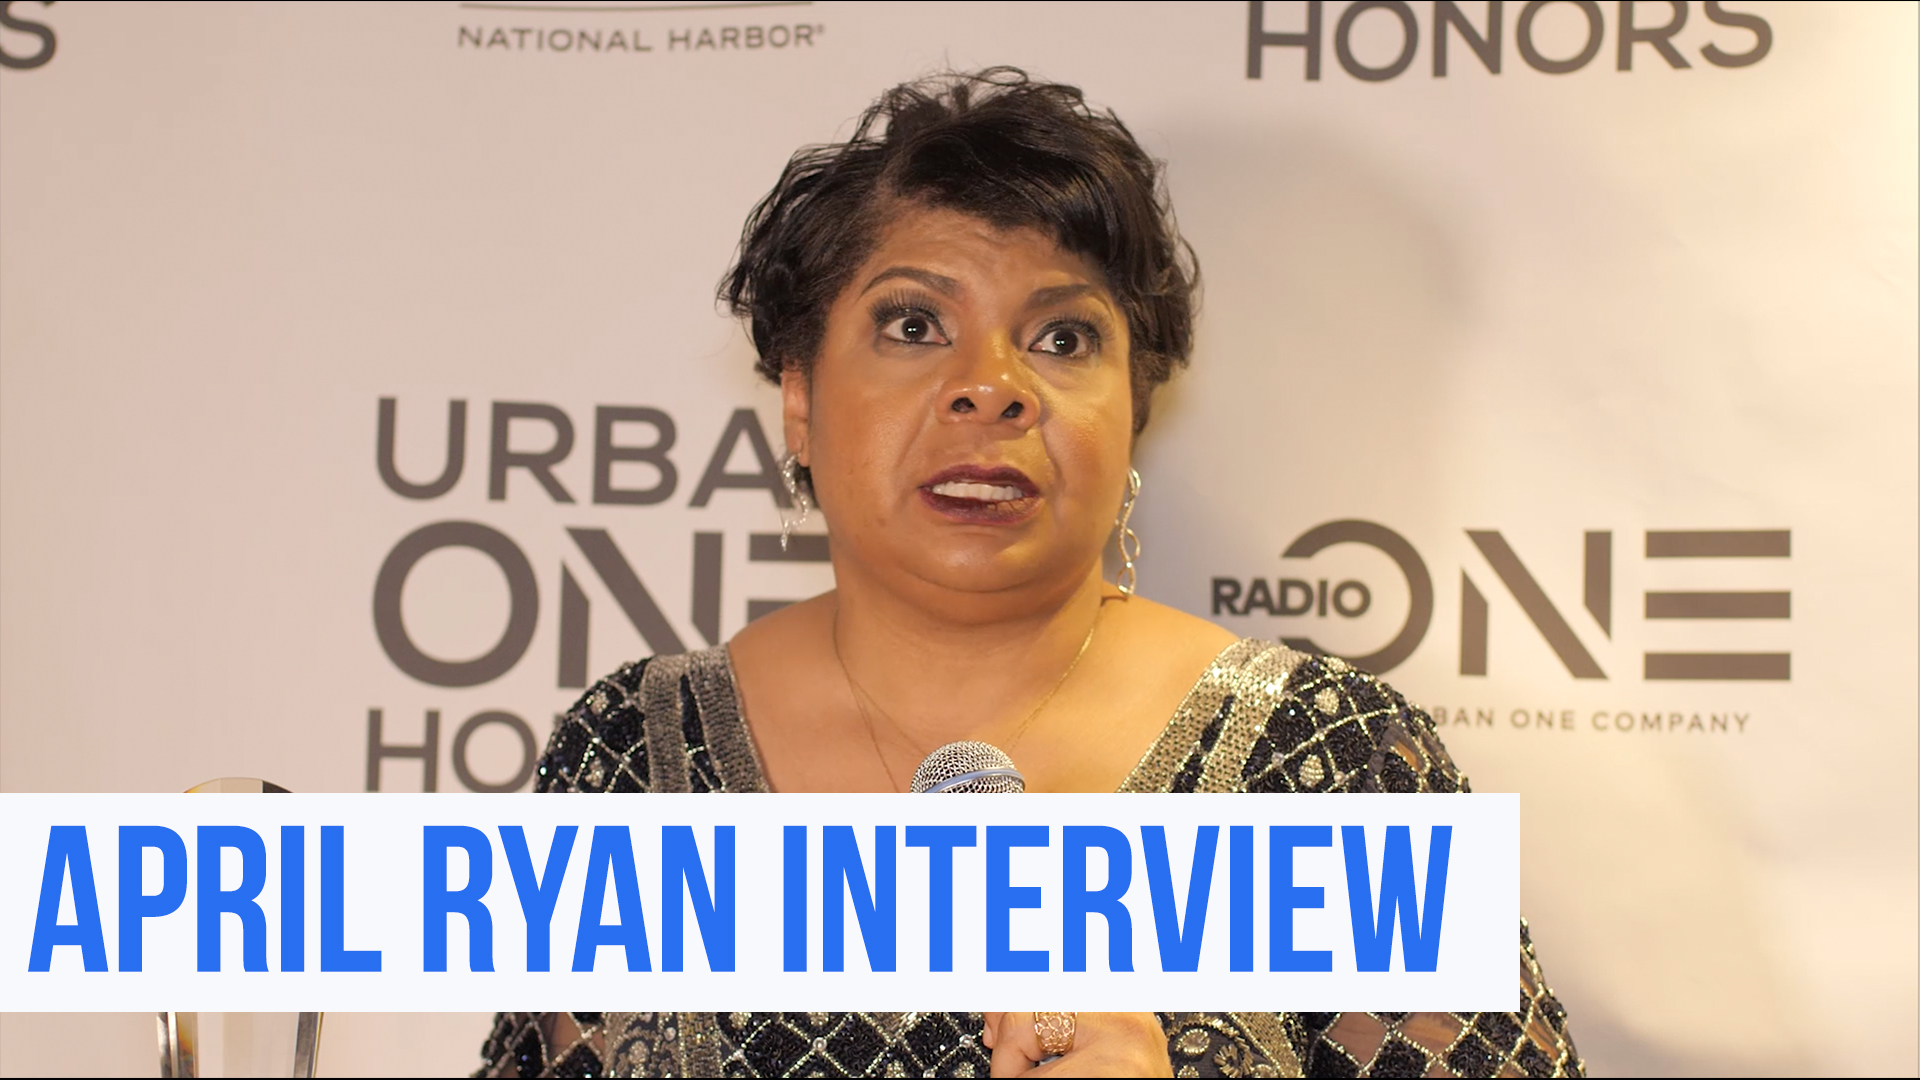 Urban One Honors: April Ryan